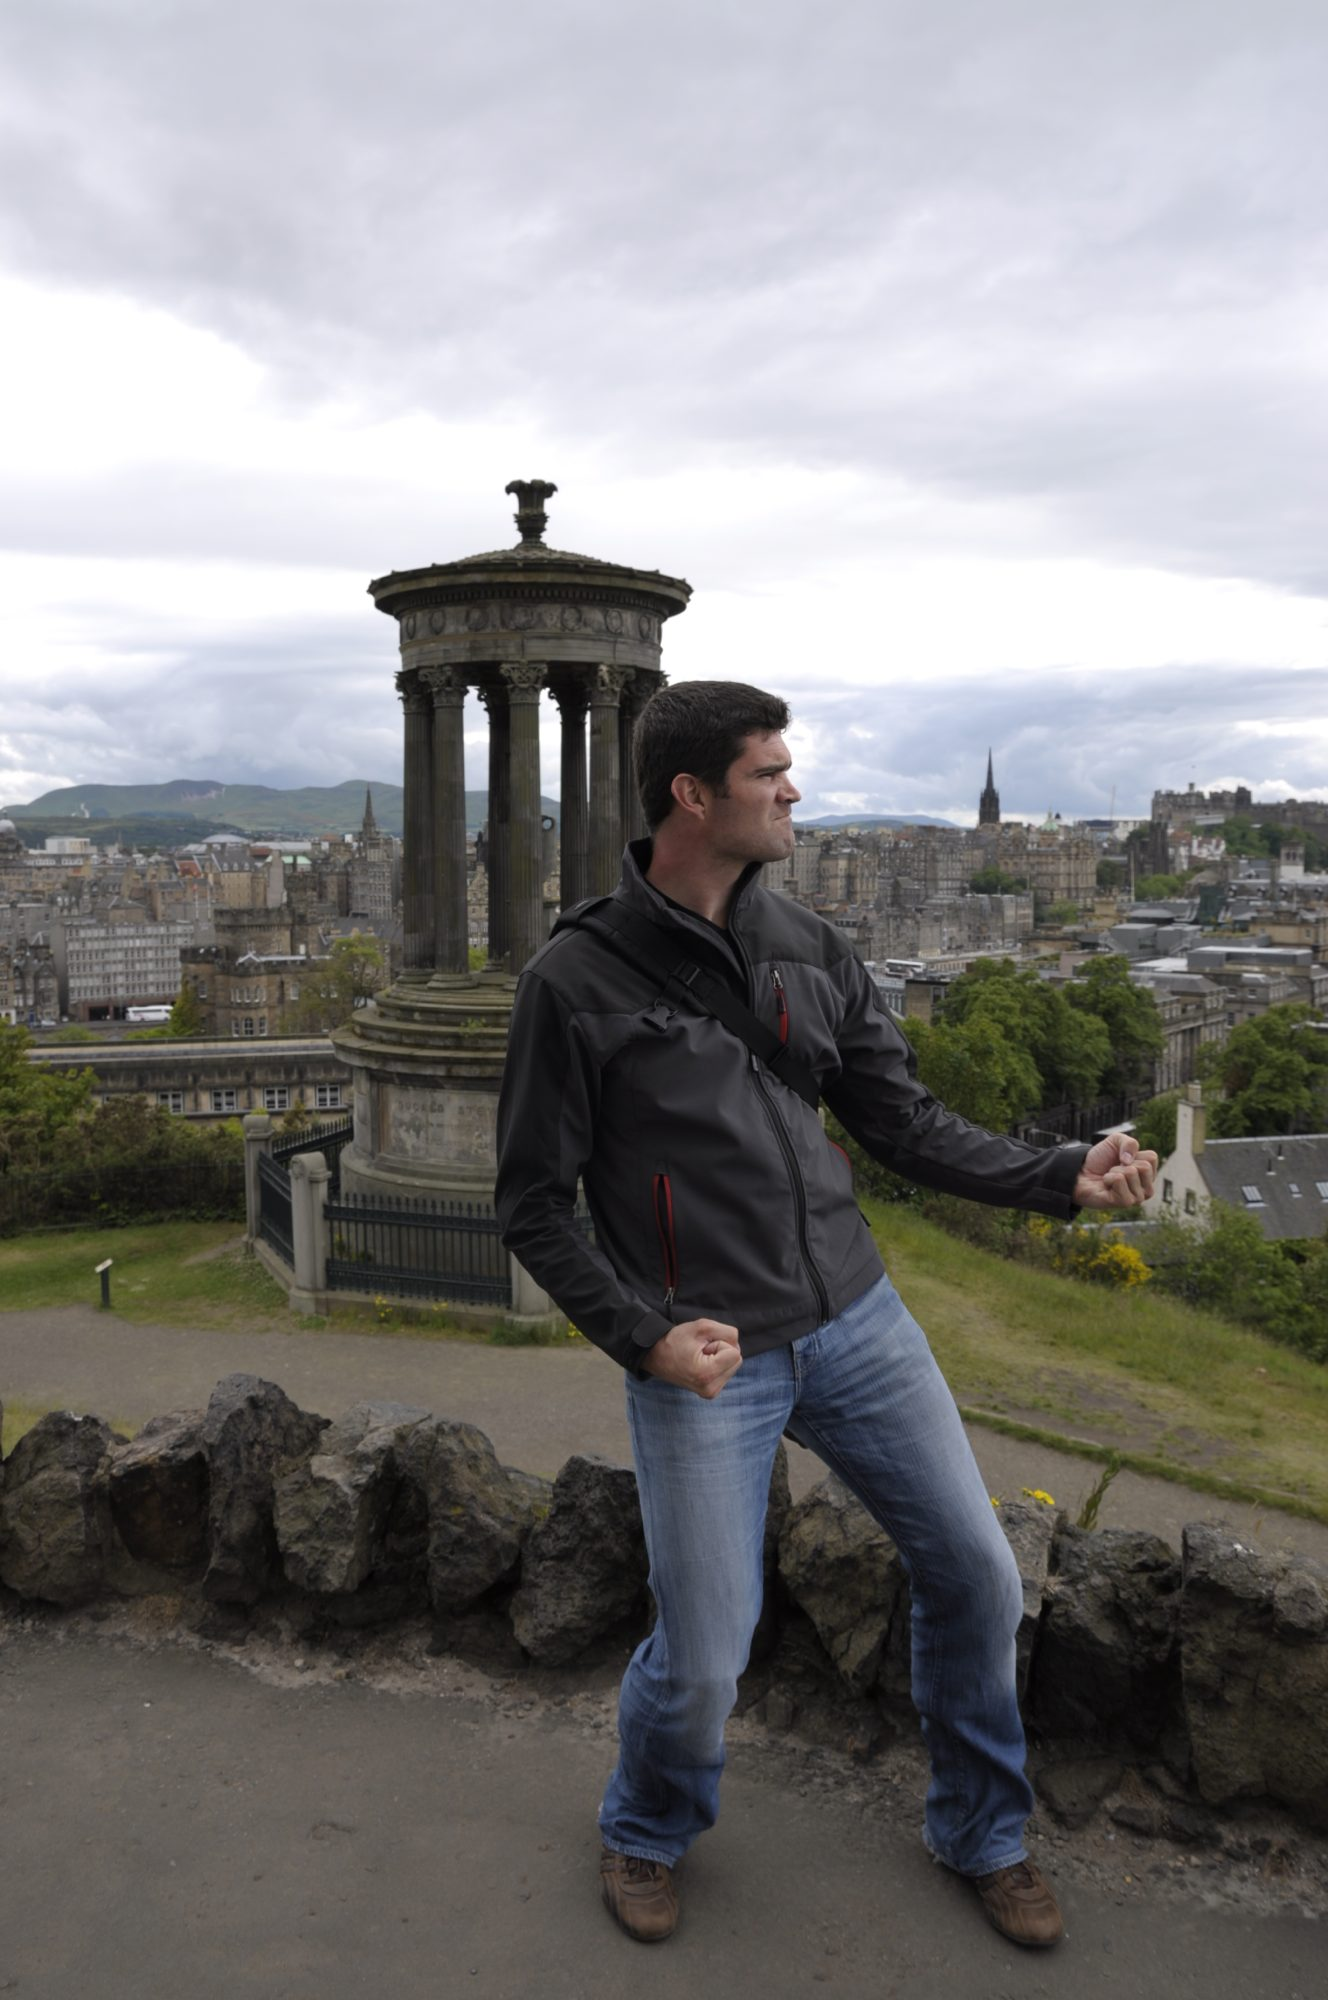 Juni 2011 – In Schottland. Thilo in Edinbourgh.